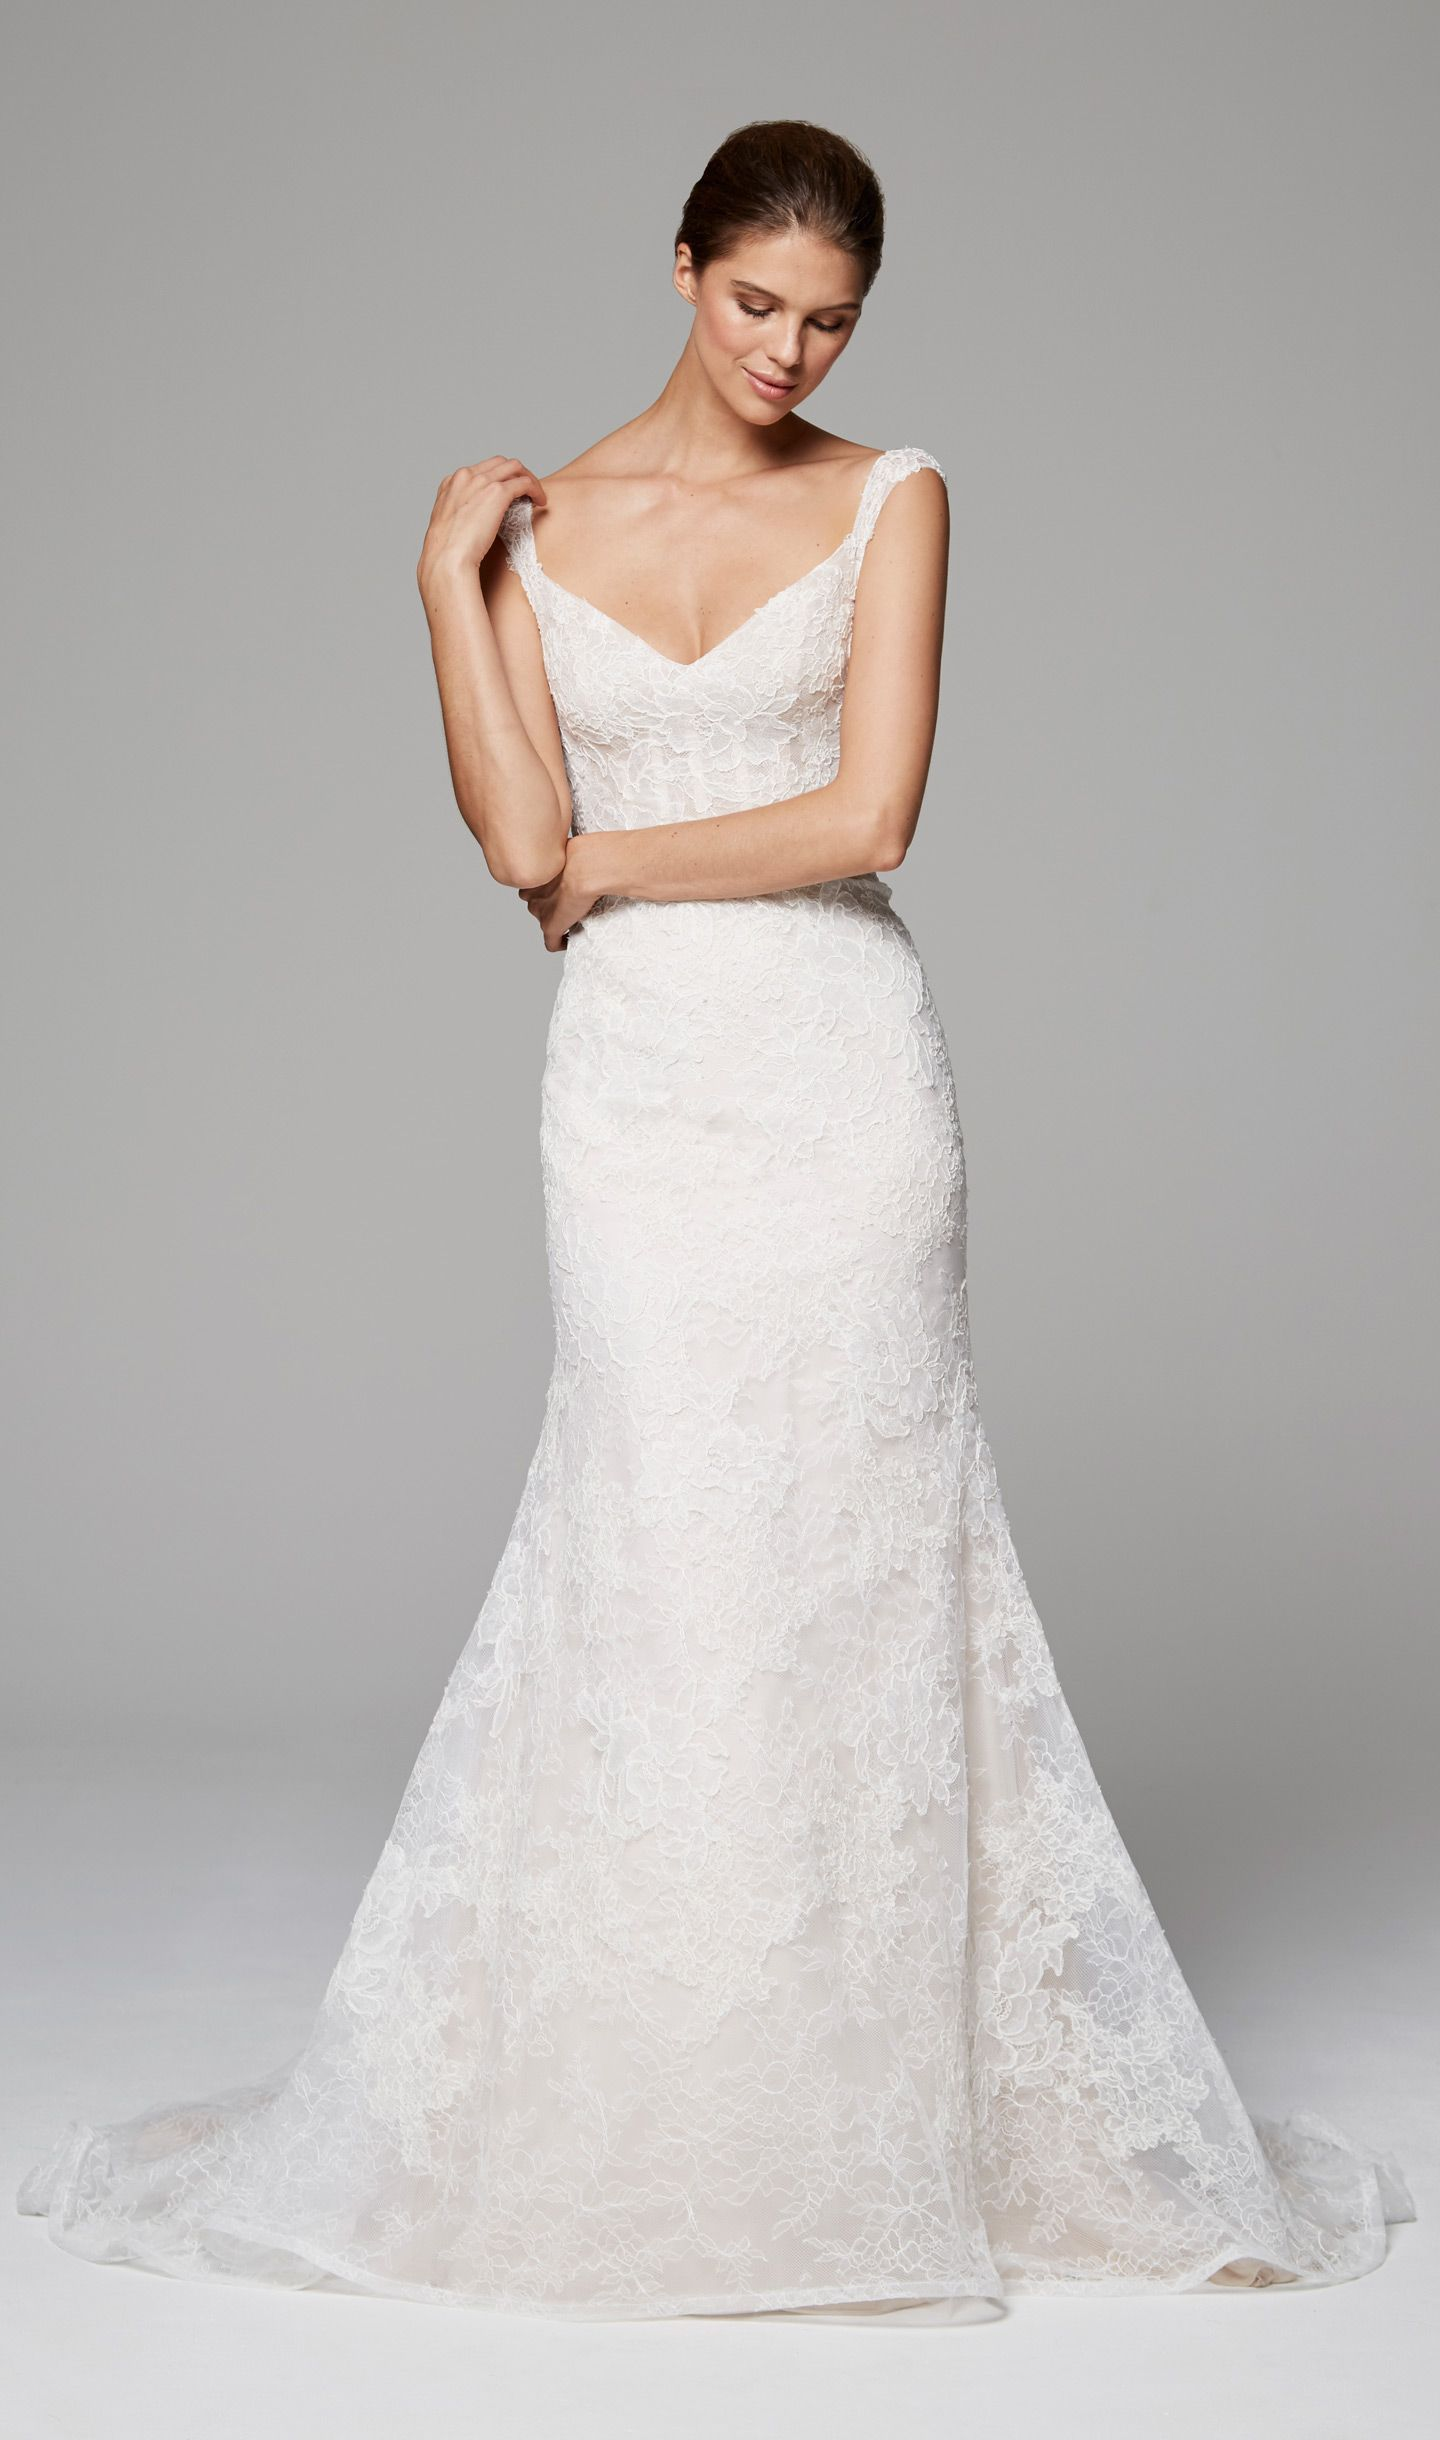 6ab35bb4d644 ZARA - Anne Barge Fall 2018 | Corseted bodice wedding dress with petite cap  sleeves and a collage of Chantilly and Alencon laces.